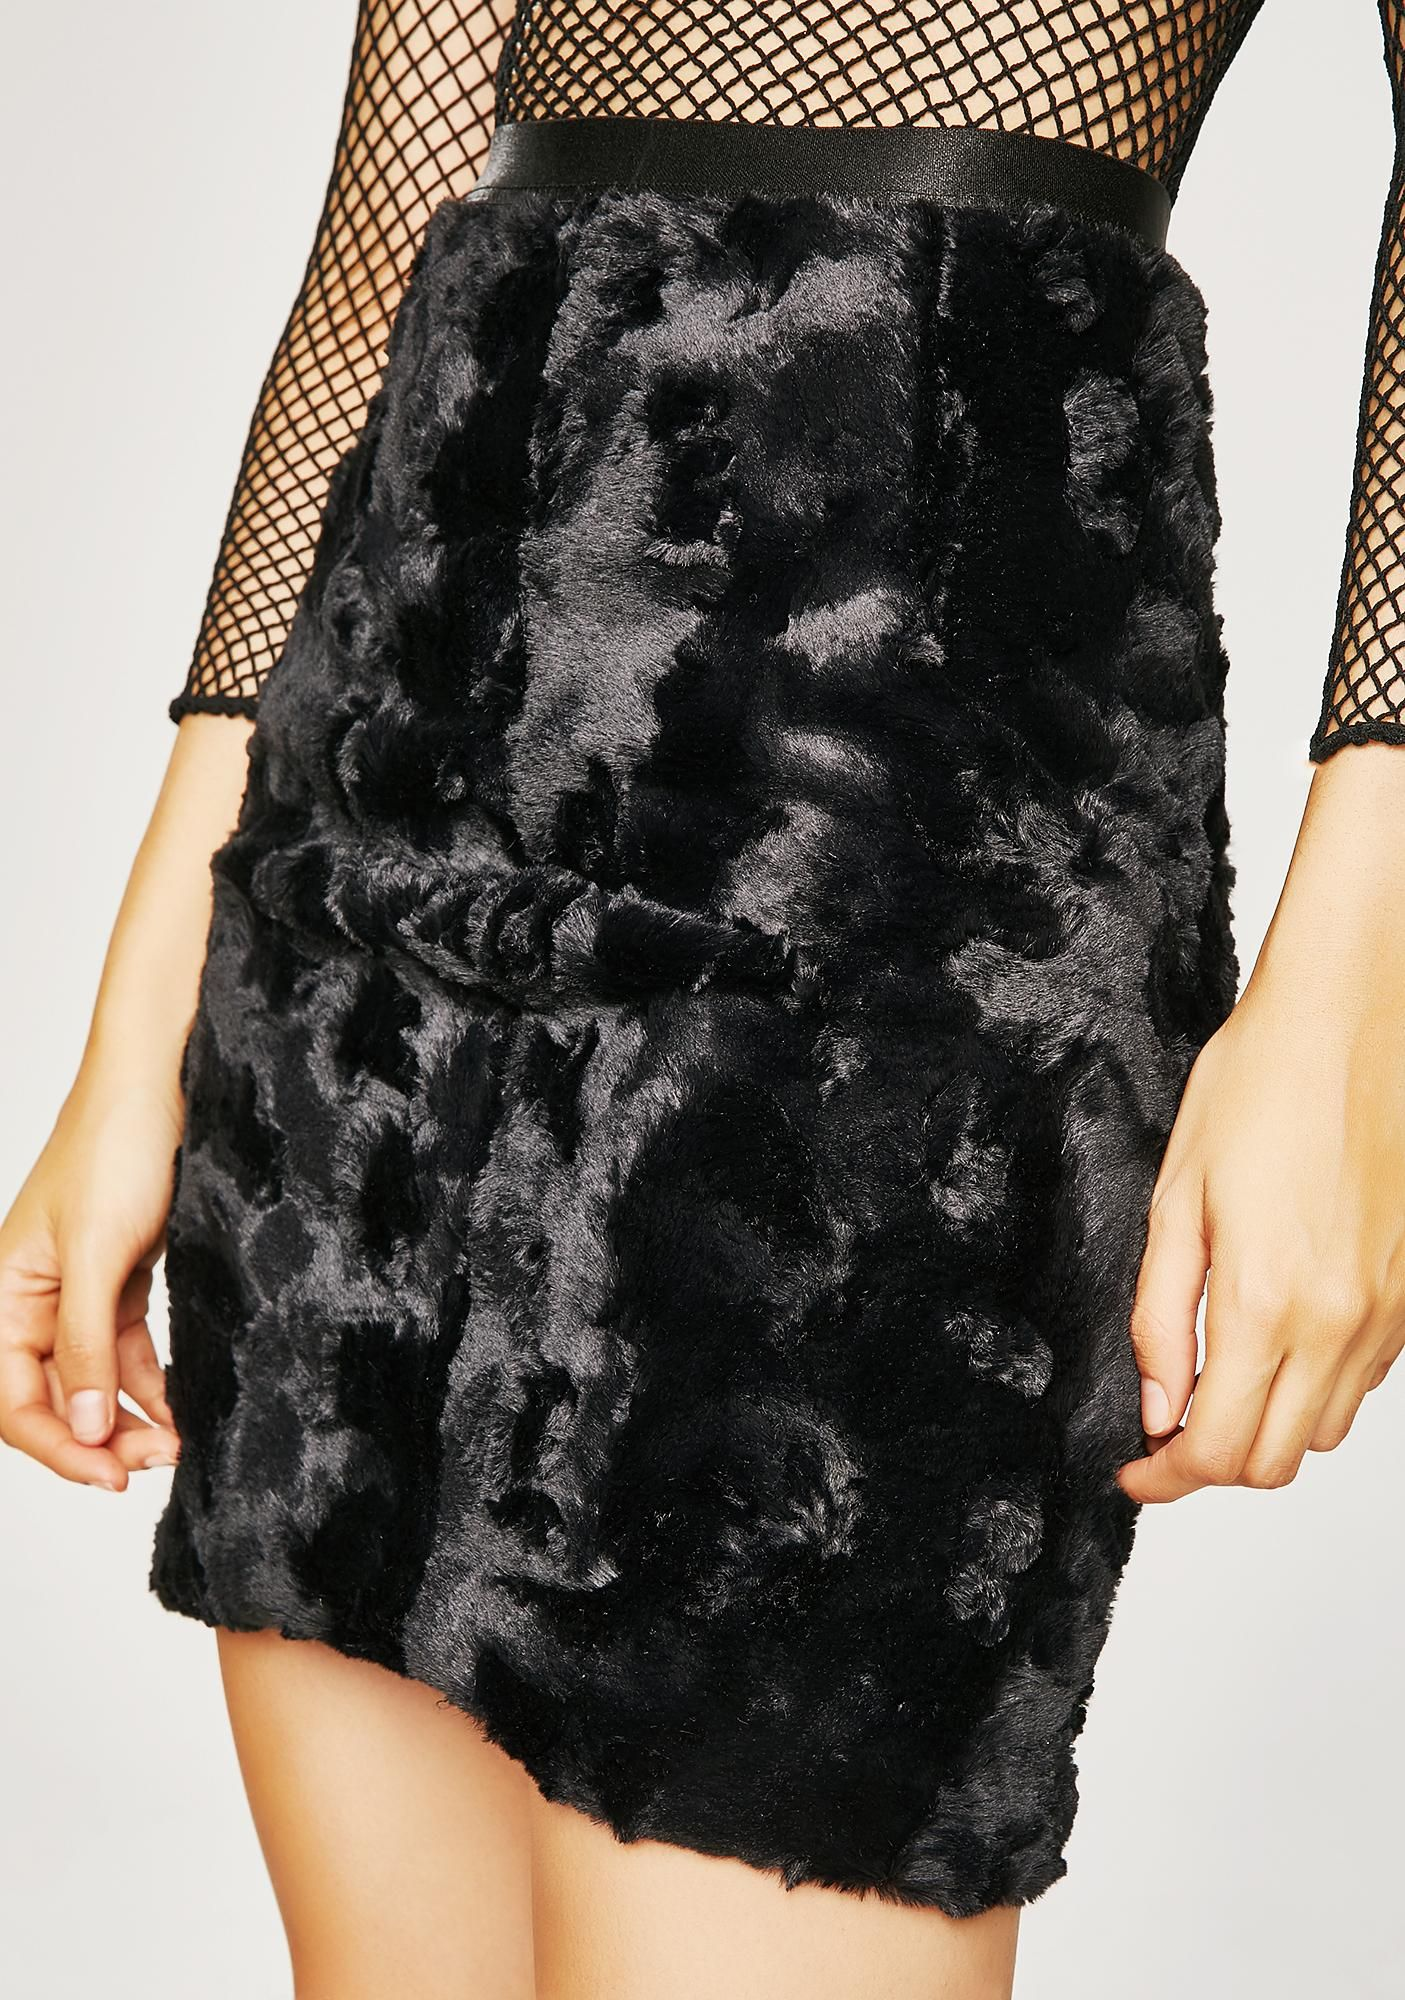 889e8834b89 Grizzly Bae Furry Skirt will make  em wanna snuggle with ya. This black  furry skirt has a mini fit with a zipper closure on the back.